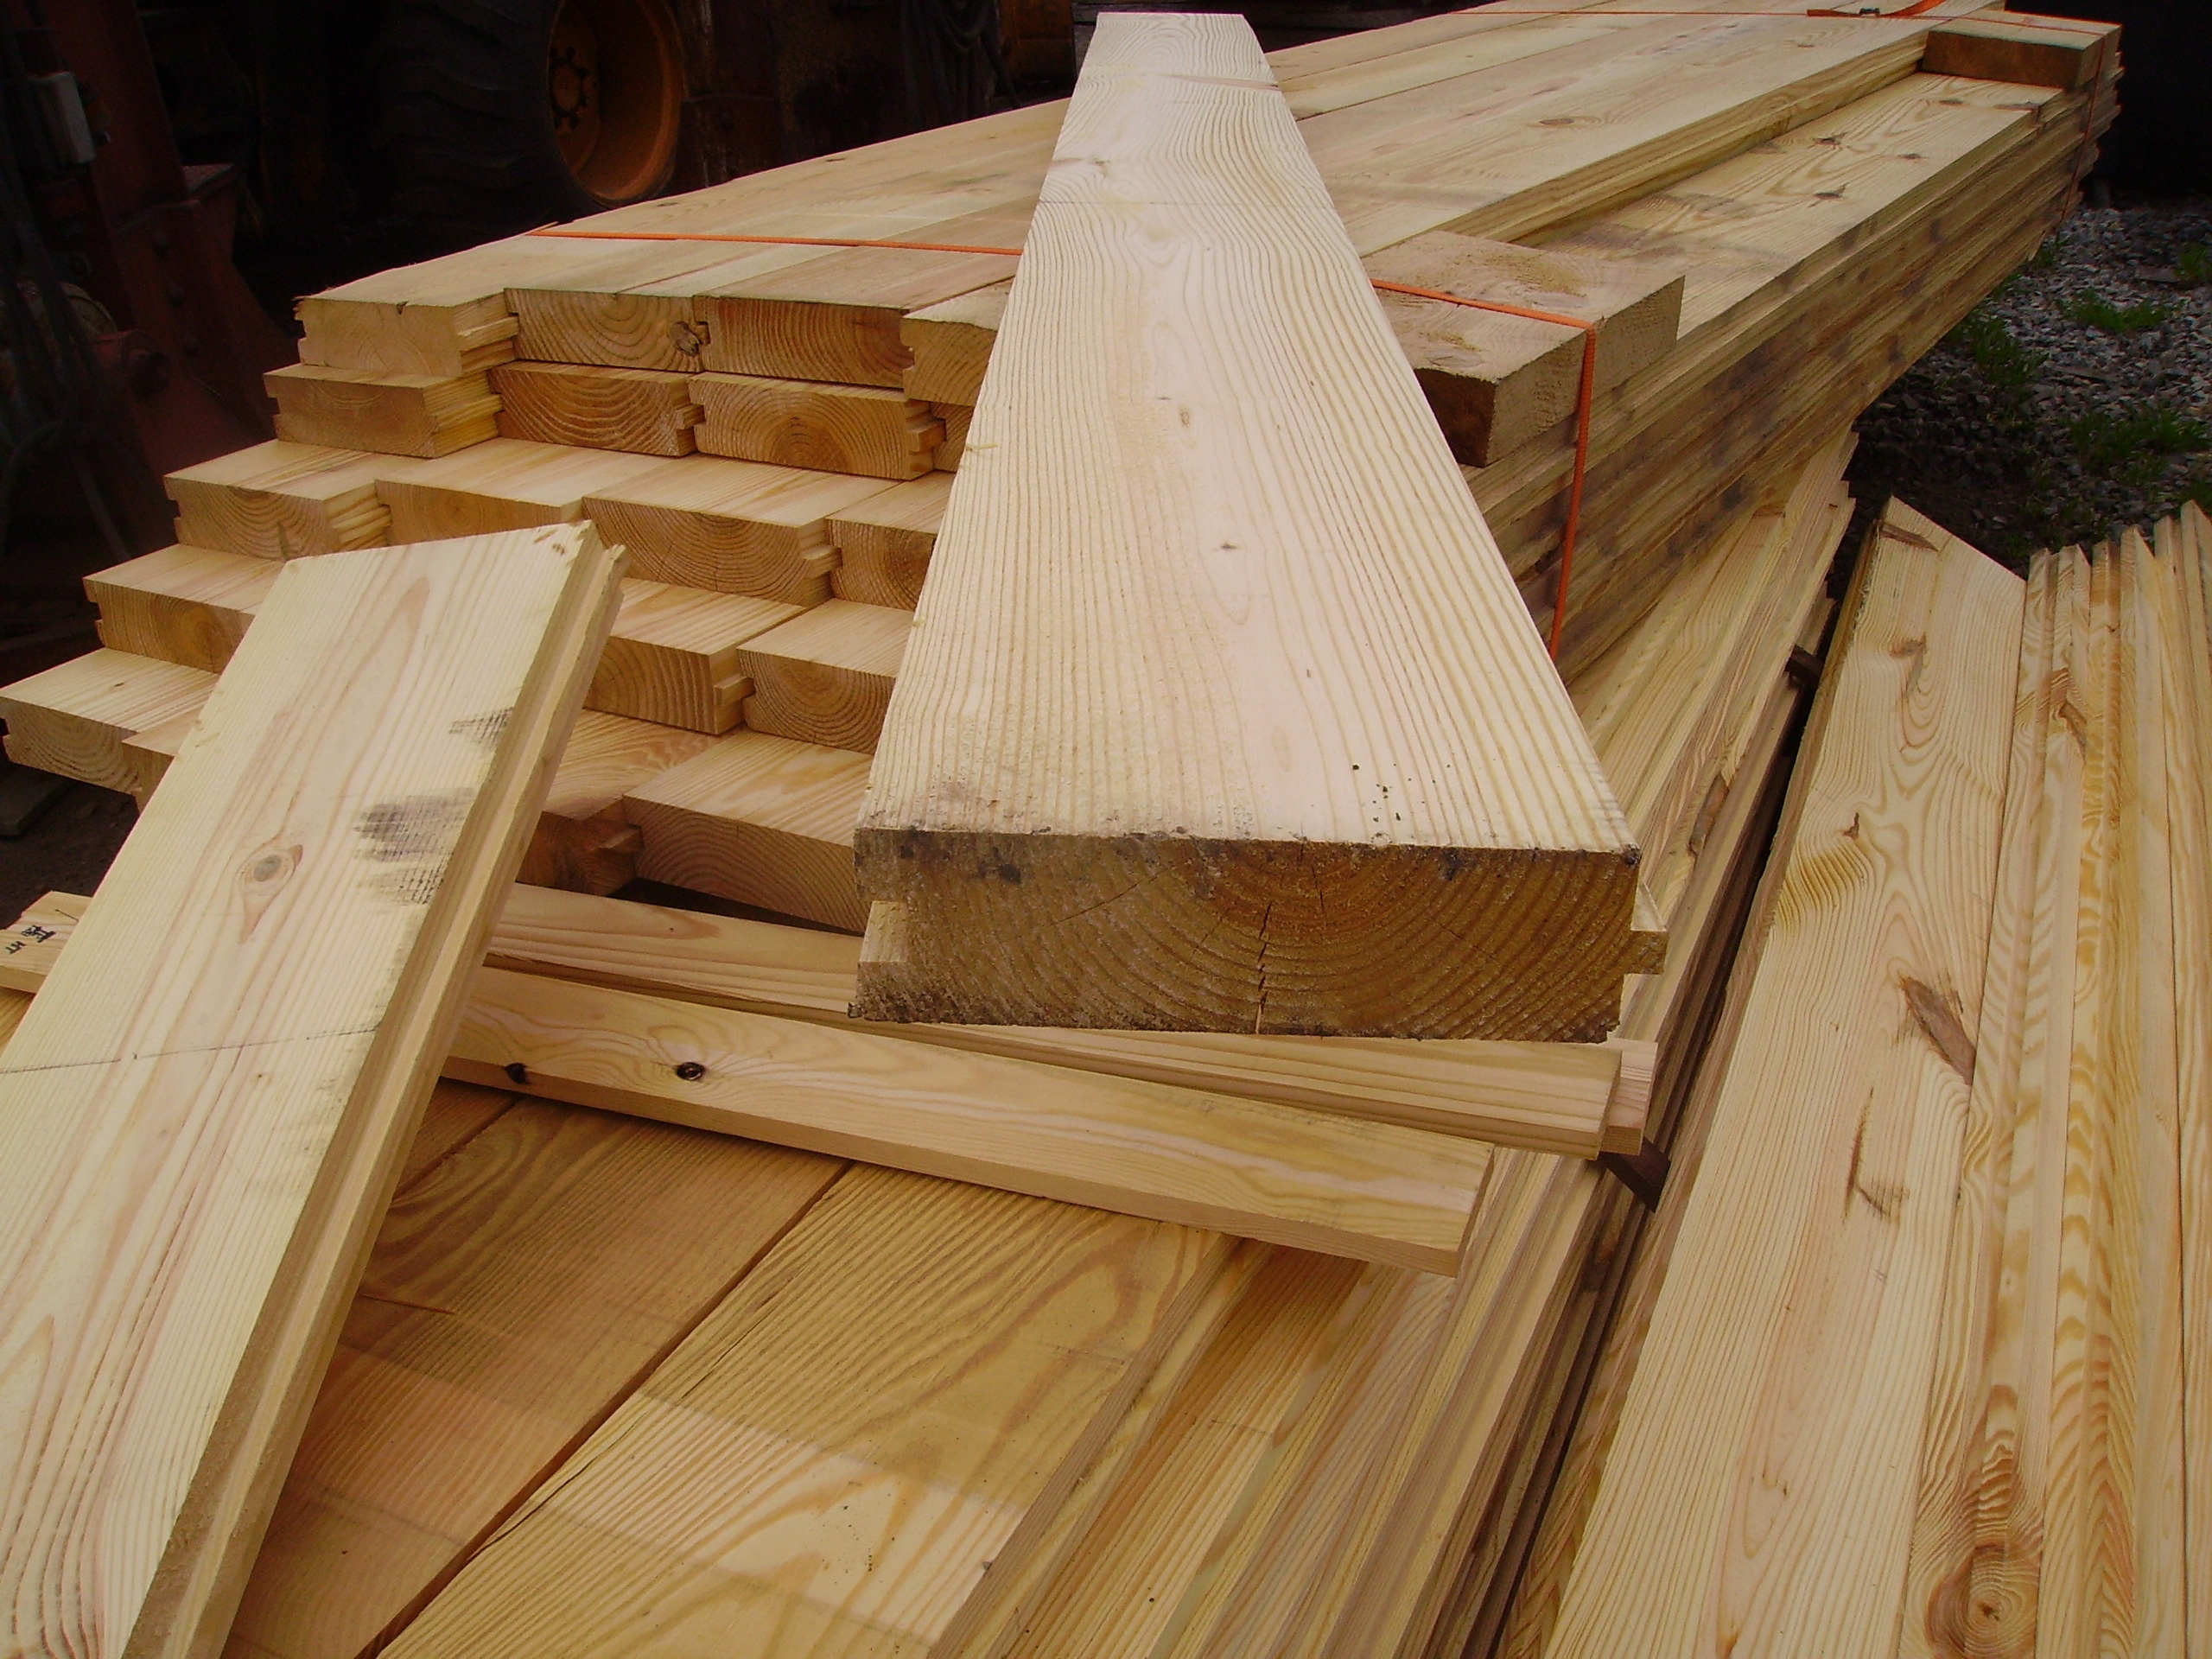 Timber Decking Materials Of Decking Materials Tongue And Groove Decking Material